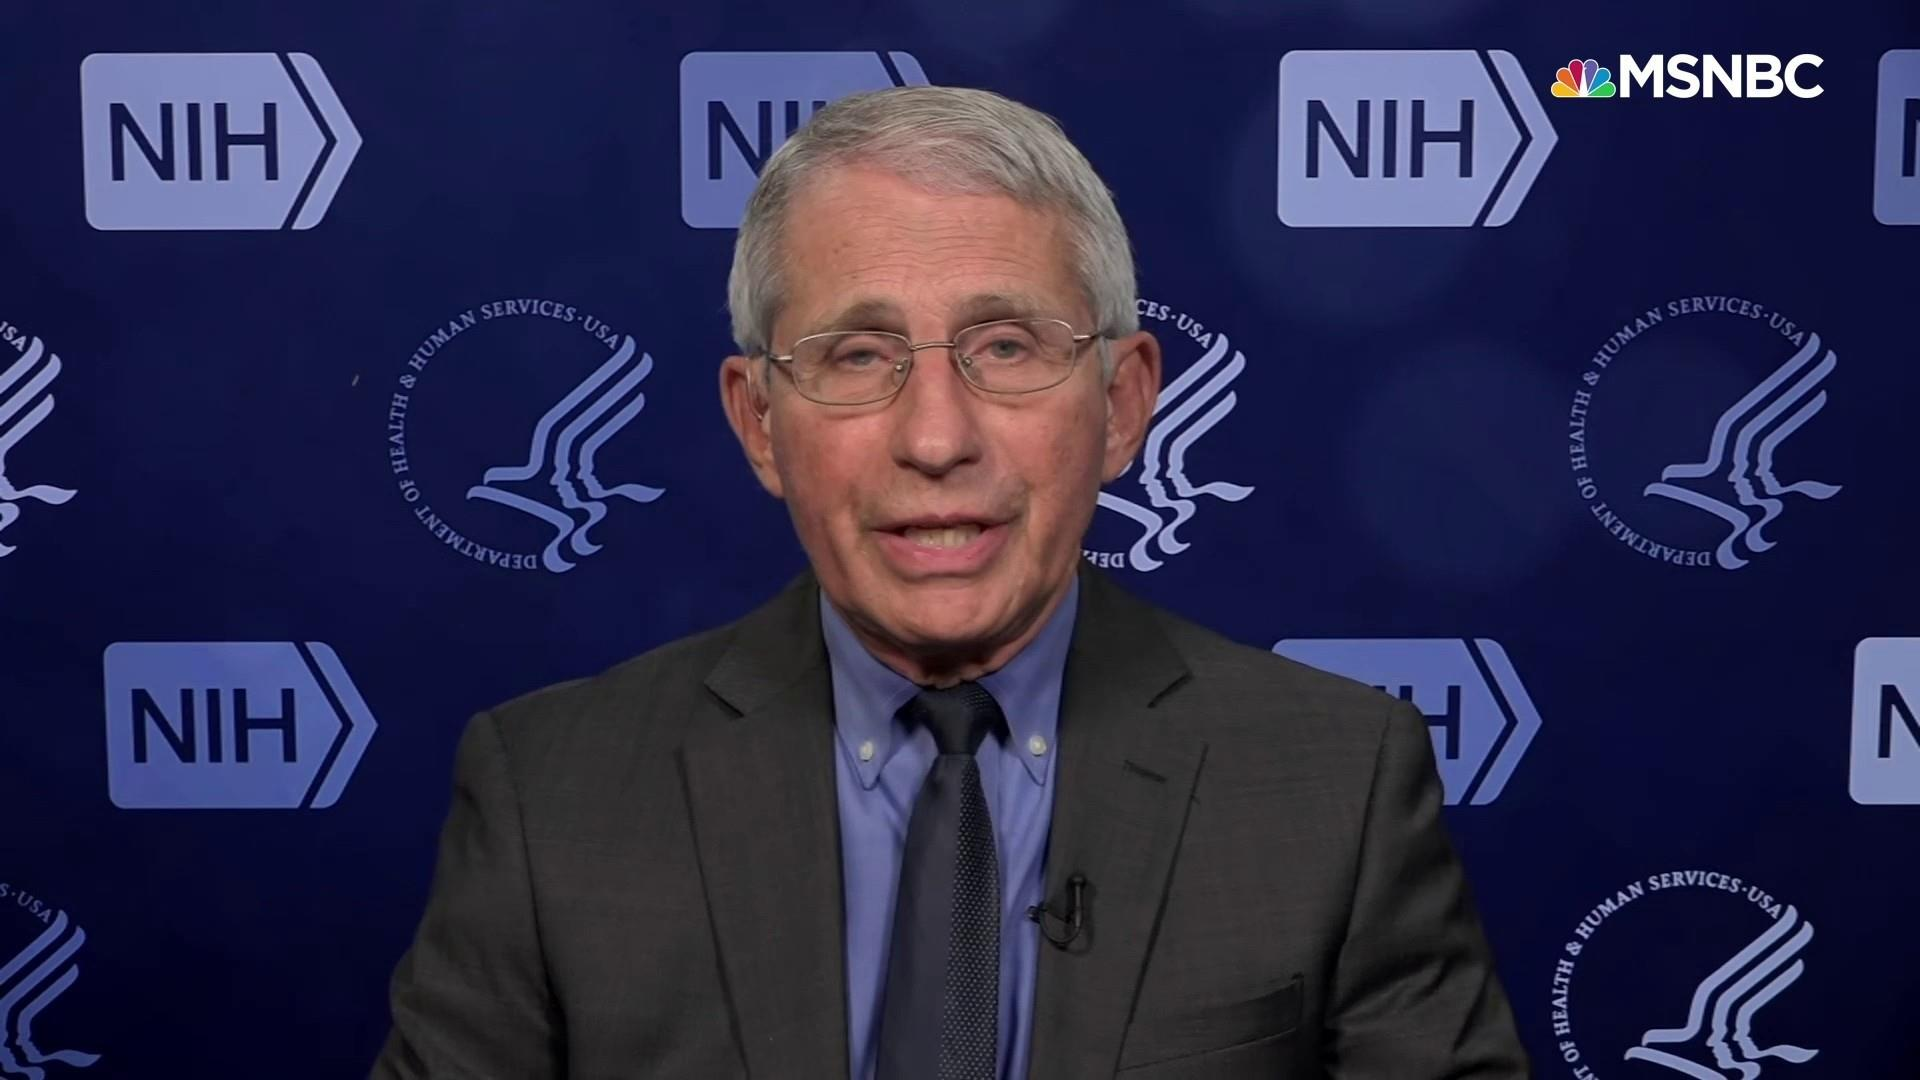 Dr. Fauci on Johnson & Johnson vaccine pause: 'Safety was put right up front' thumbnail